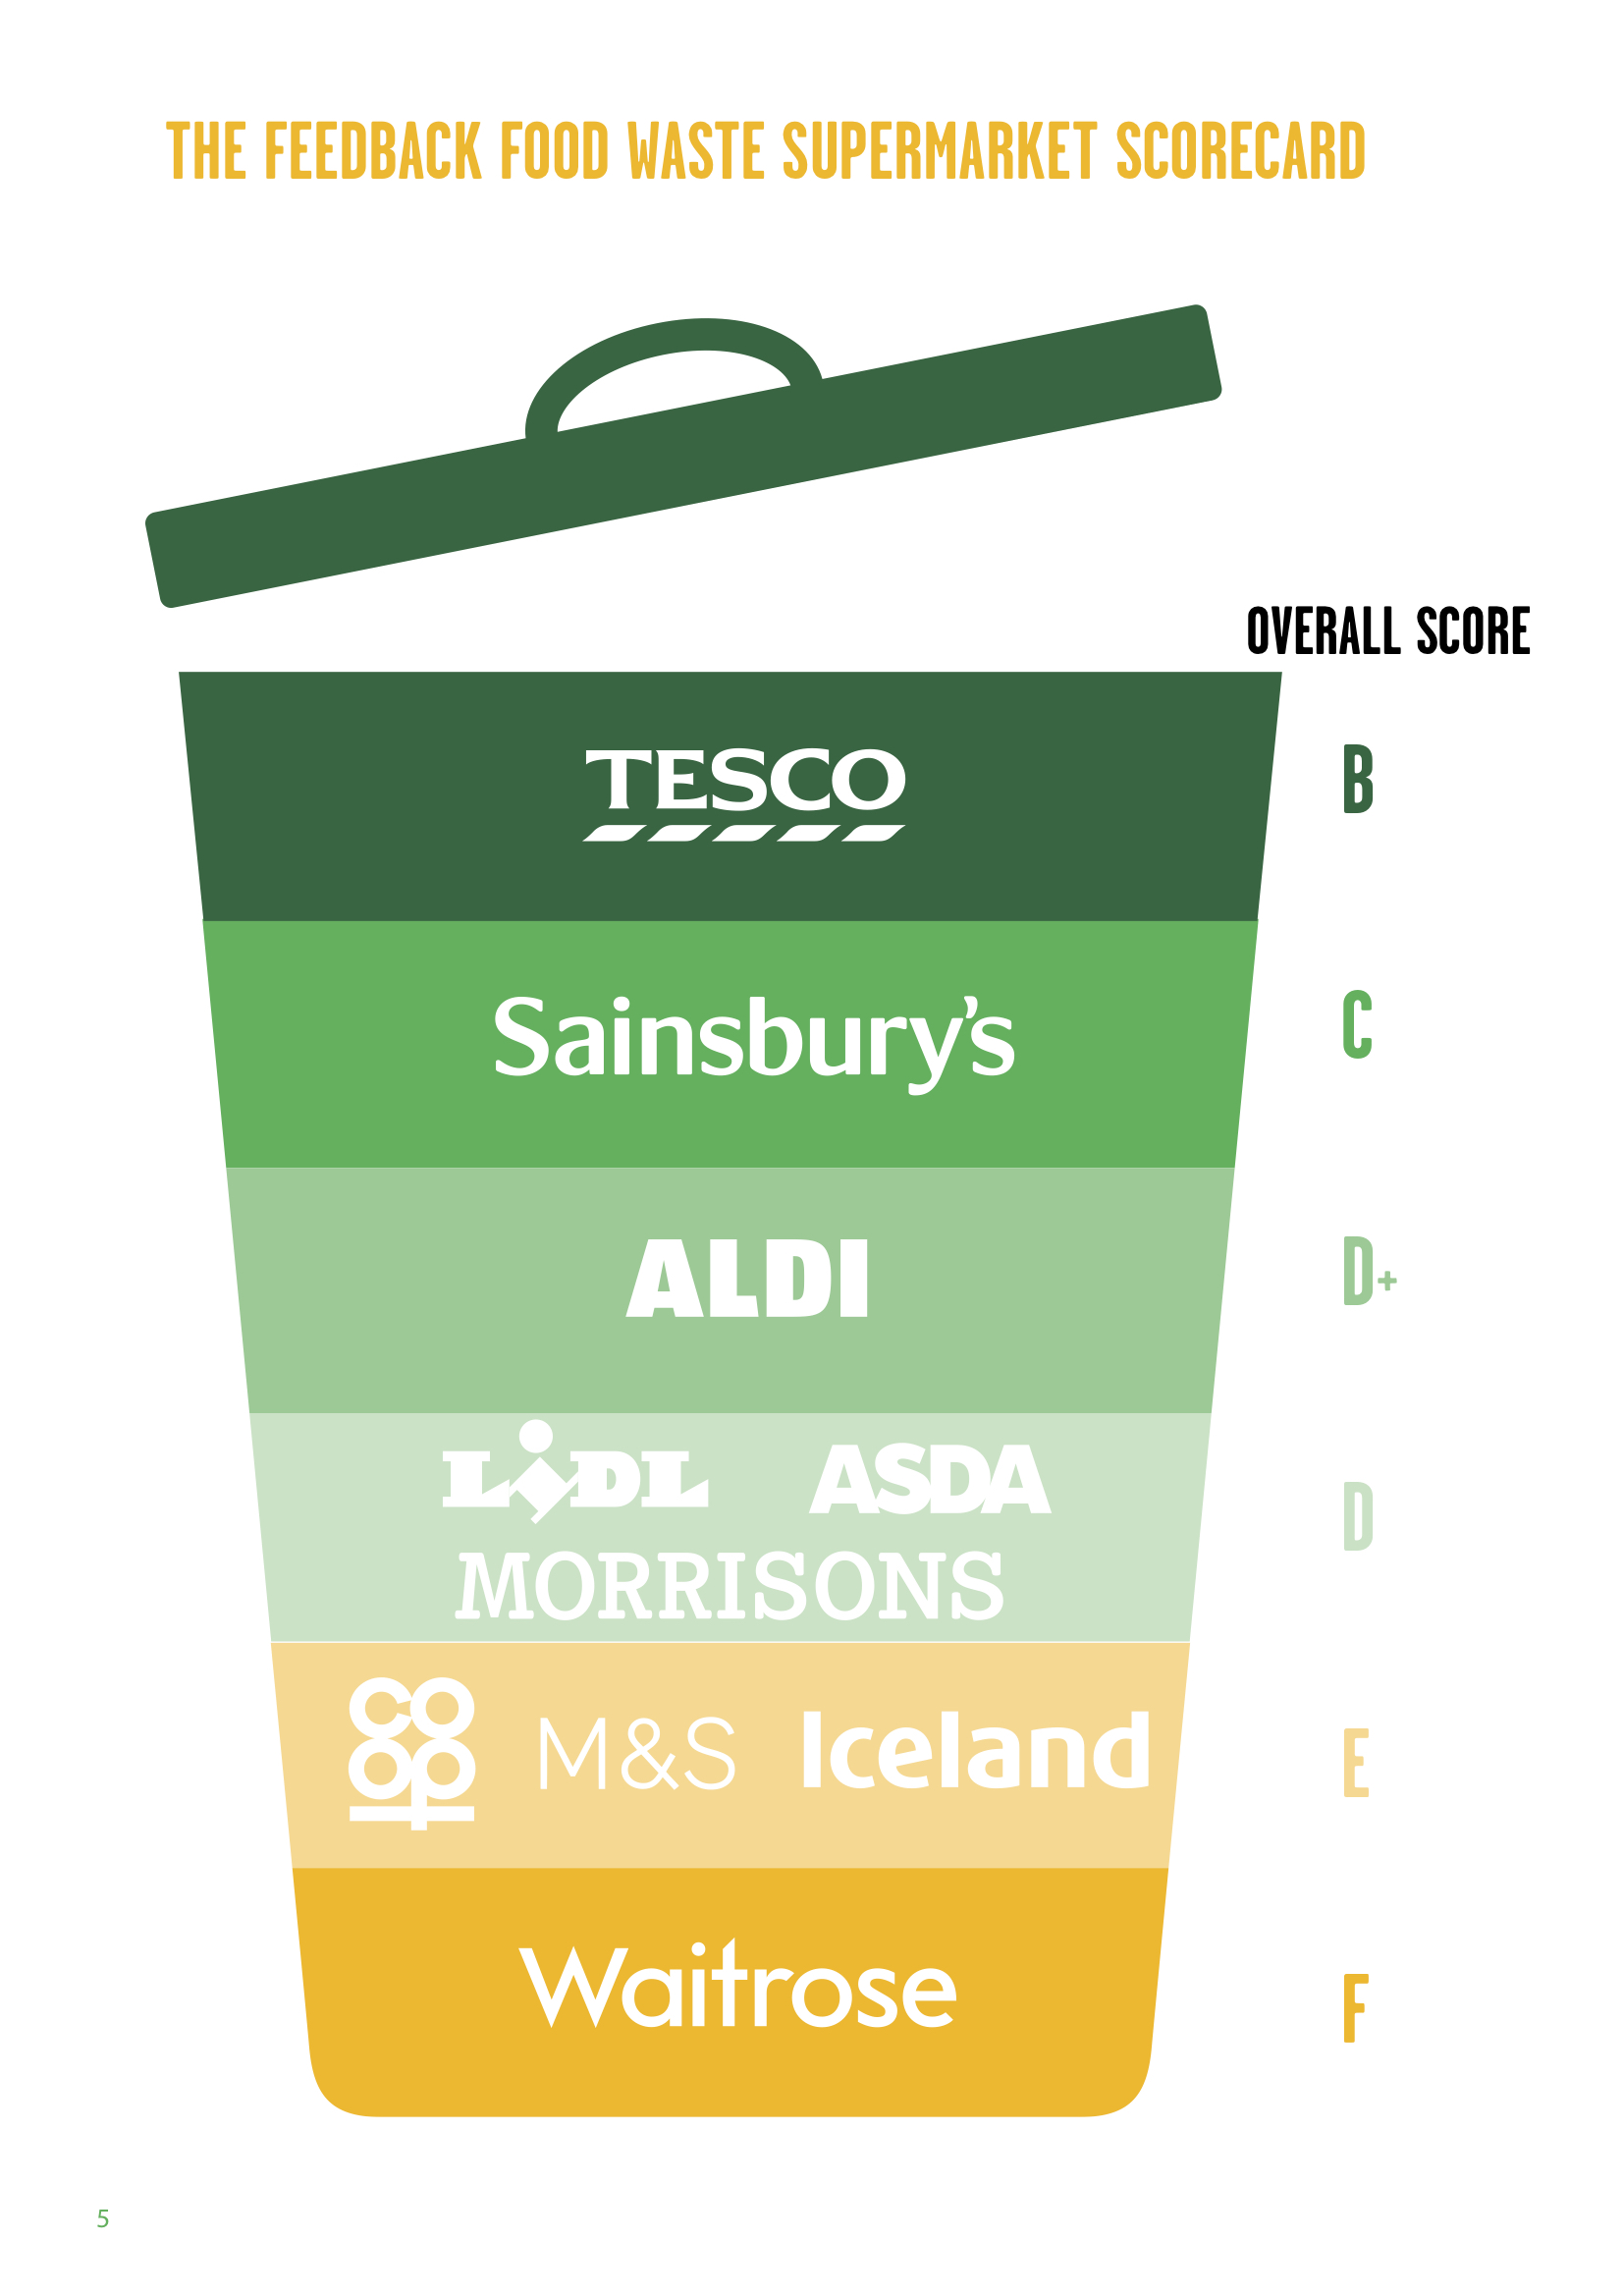 Infographic ranking different supermarkets on their food waste initiative